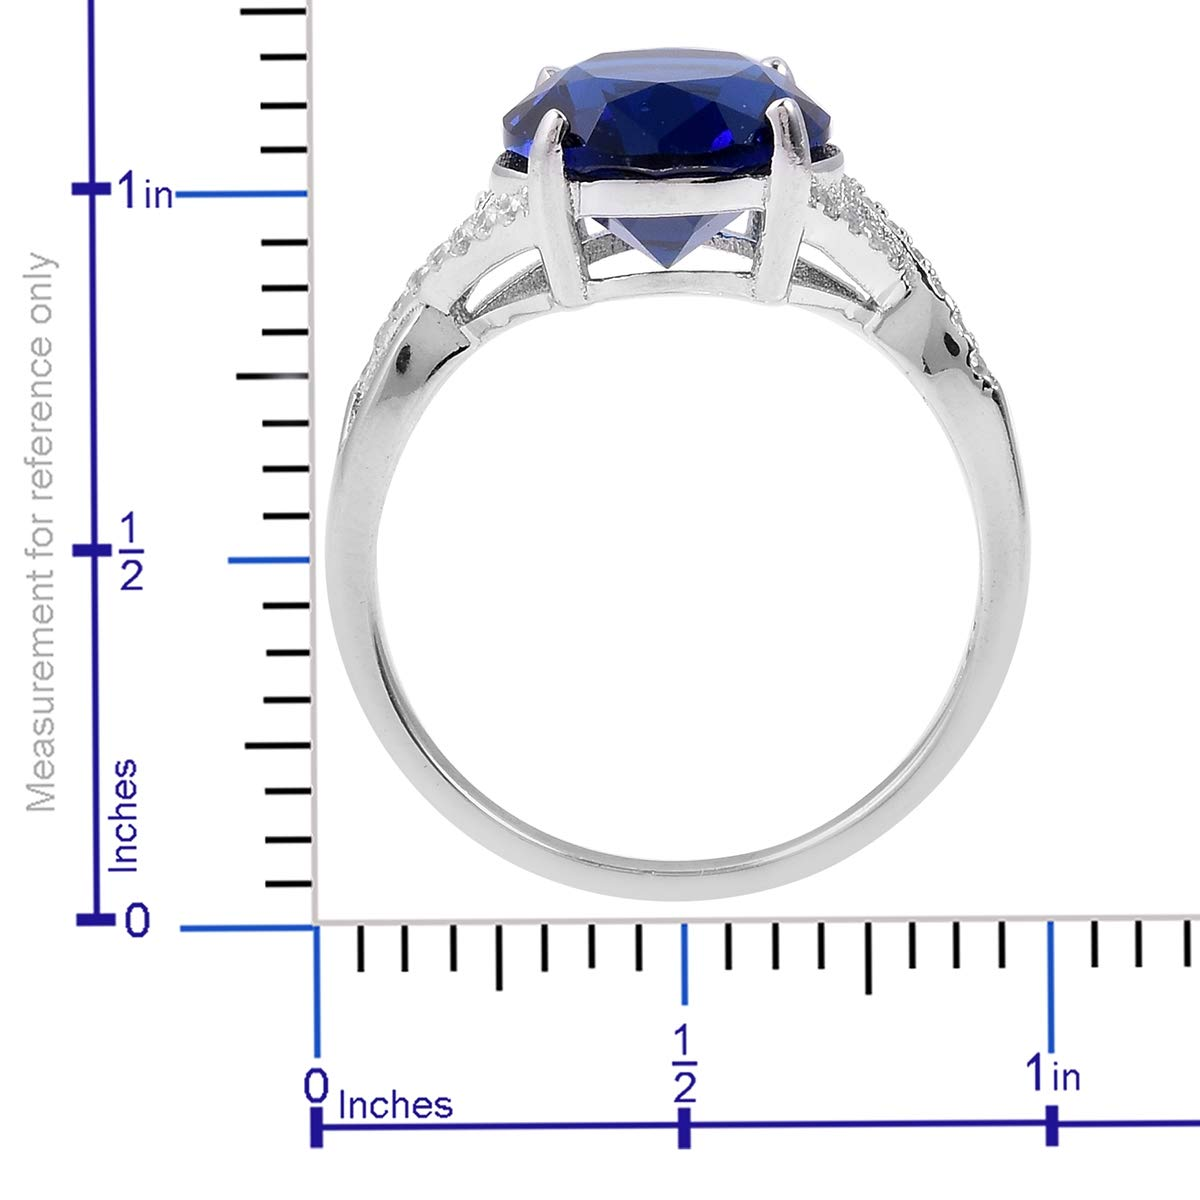 Statement Ring 925 Sterling Silver Blue Glass White Cubic Zirconia CZ Gift Jewelry for Women Size 10 Ct 5